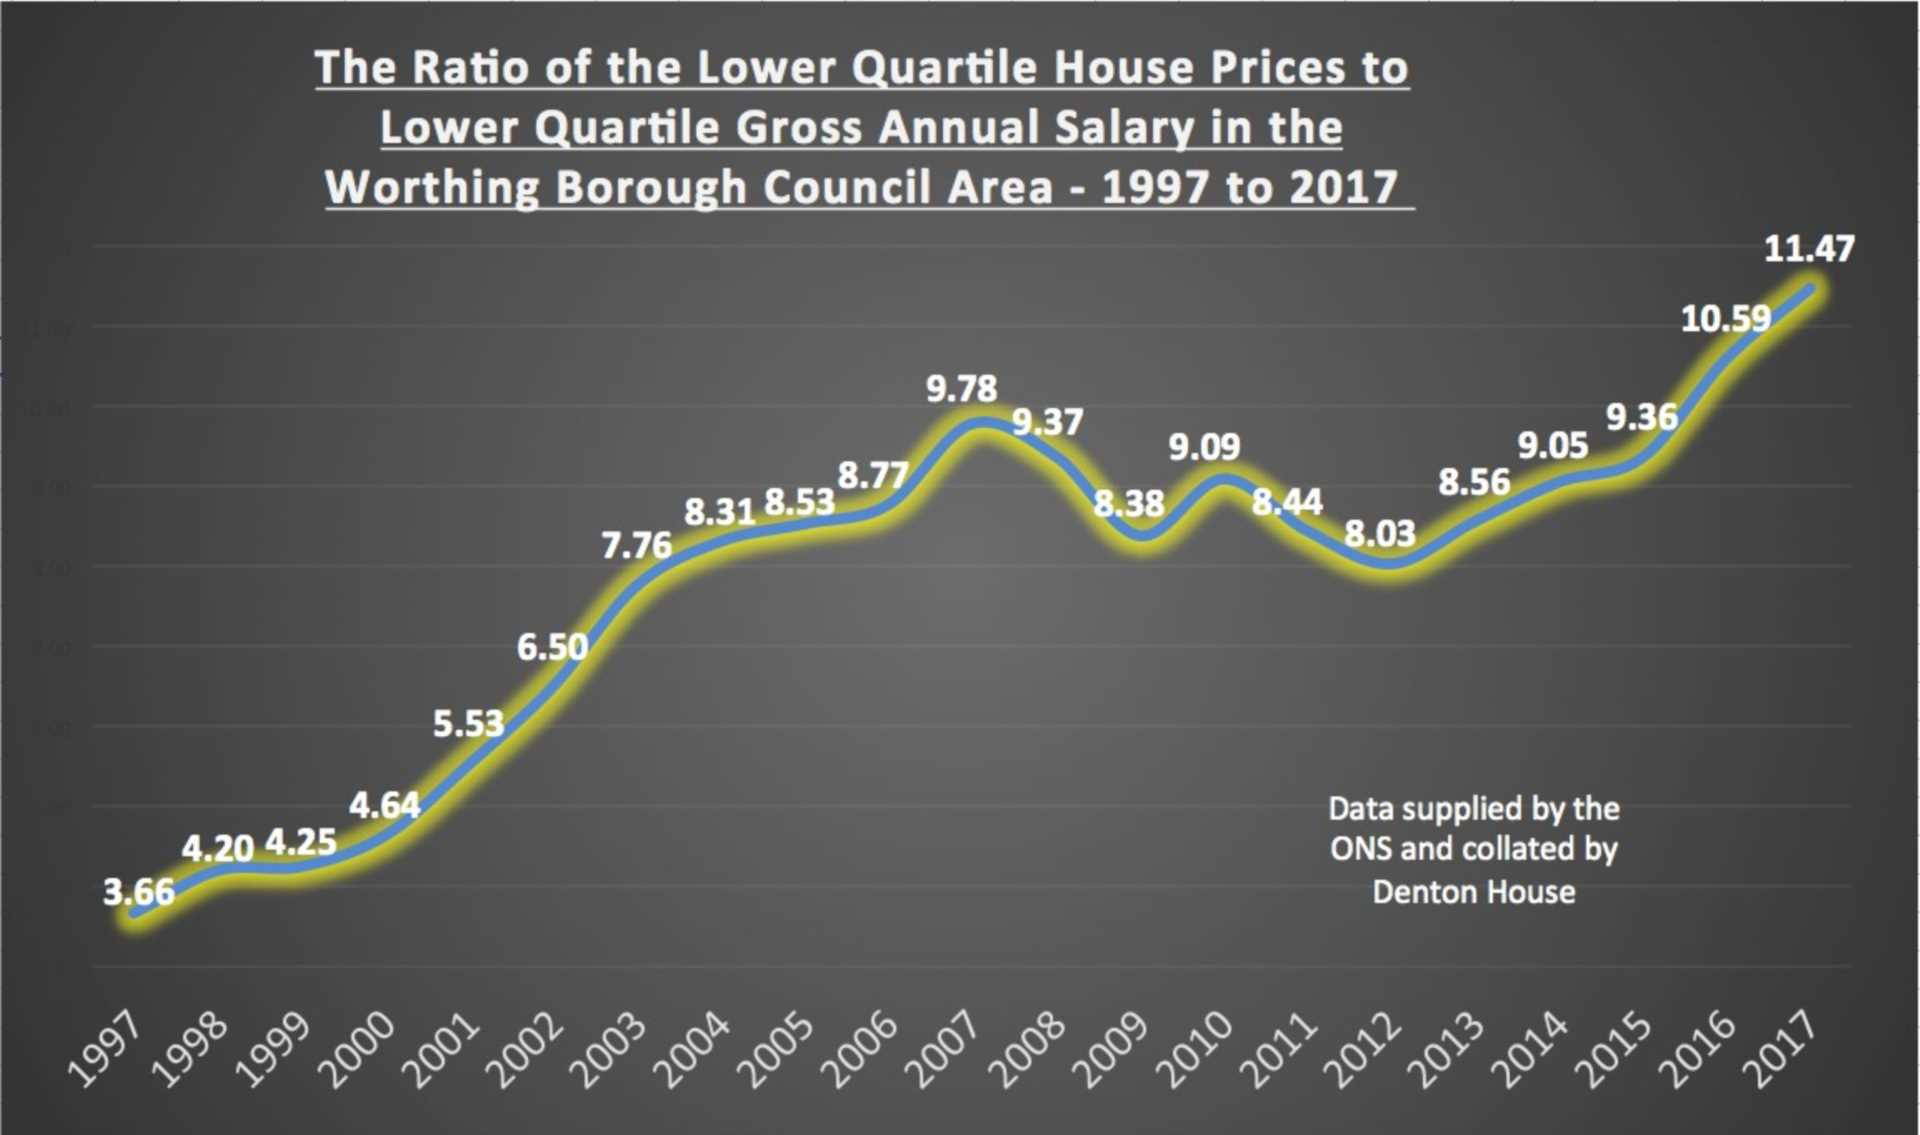 How Affordable is Property for Worthing`s Average Working Family?